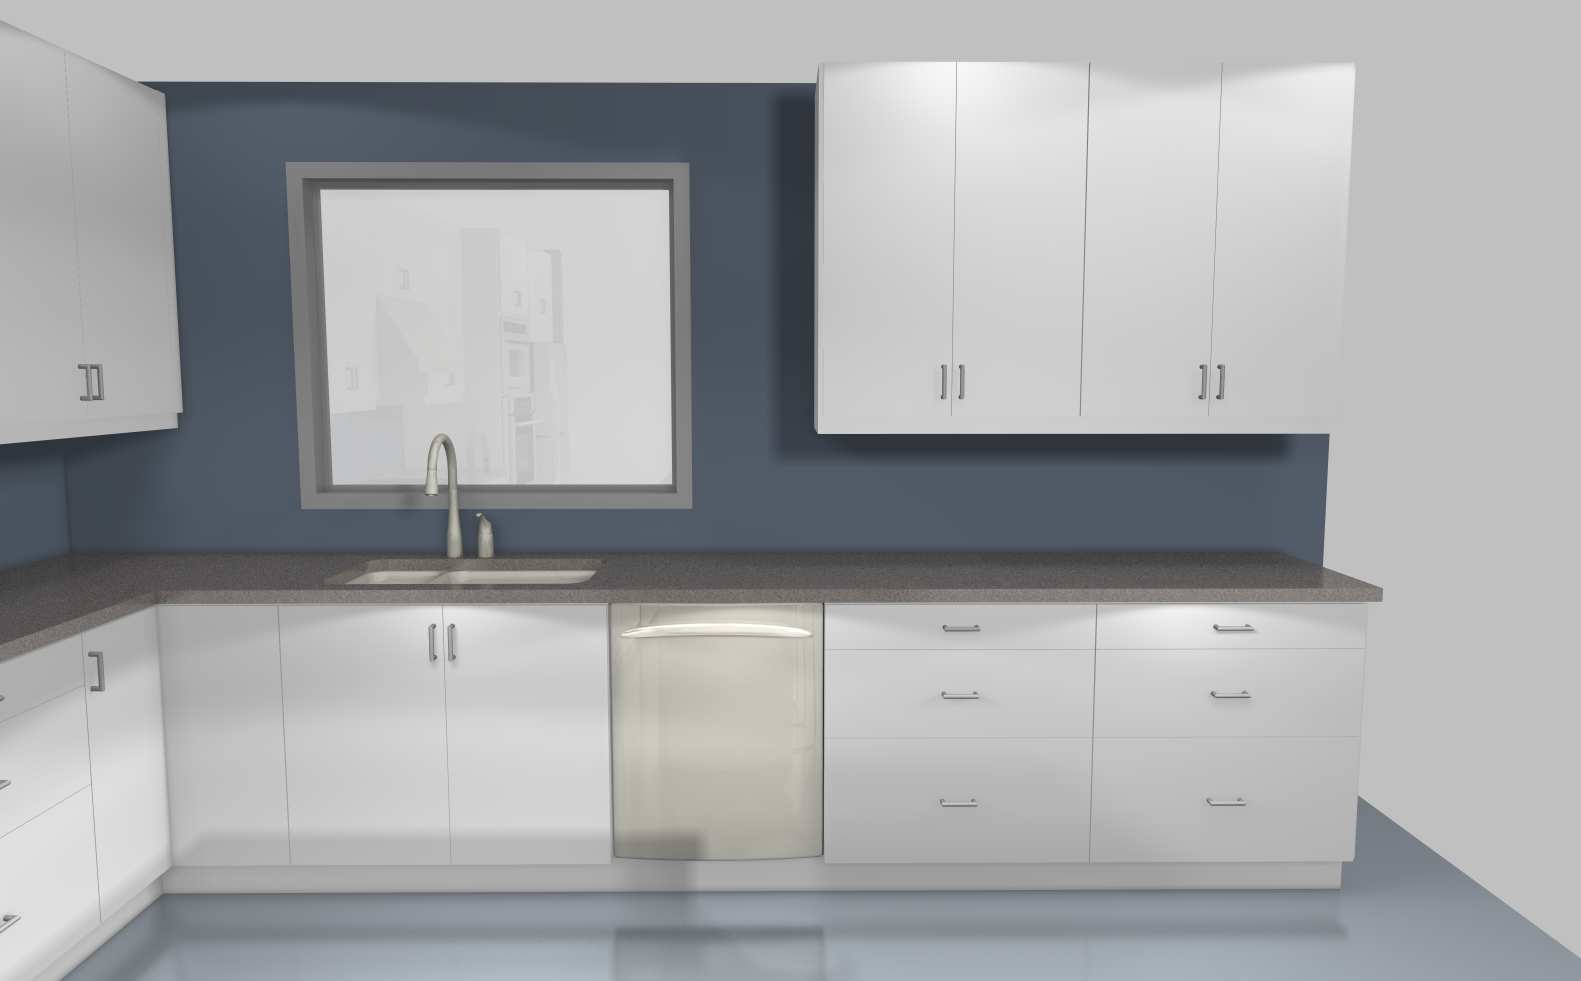 How is IKD\'s IKEA Kitchen Design Better than the Home Planner?